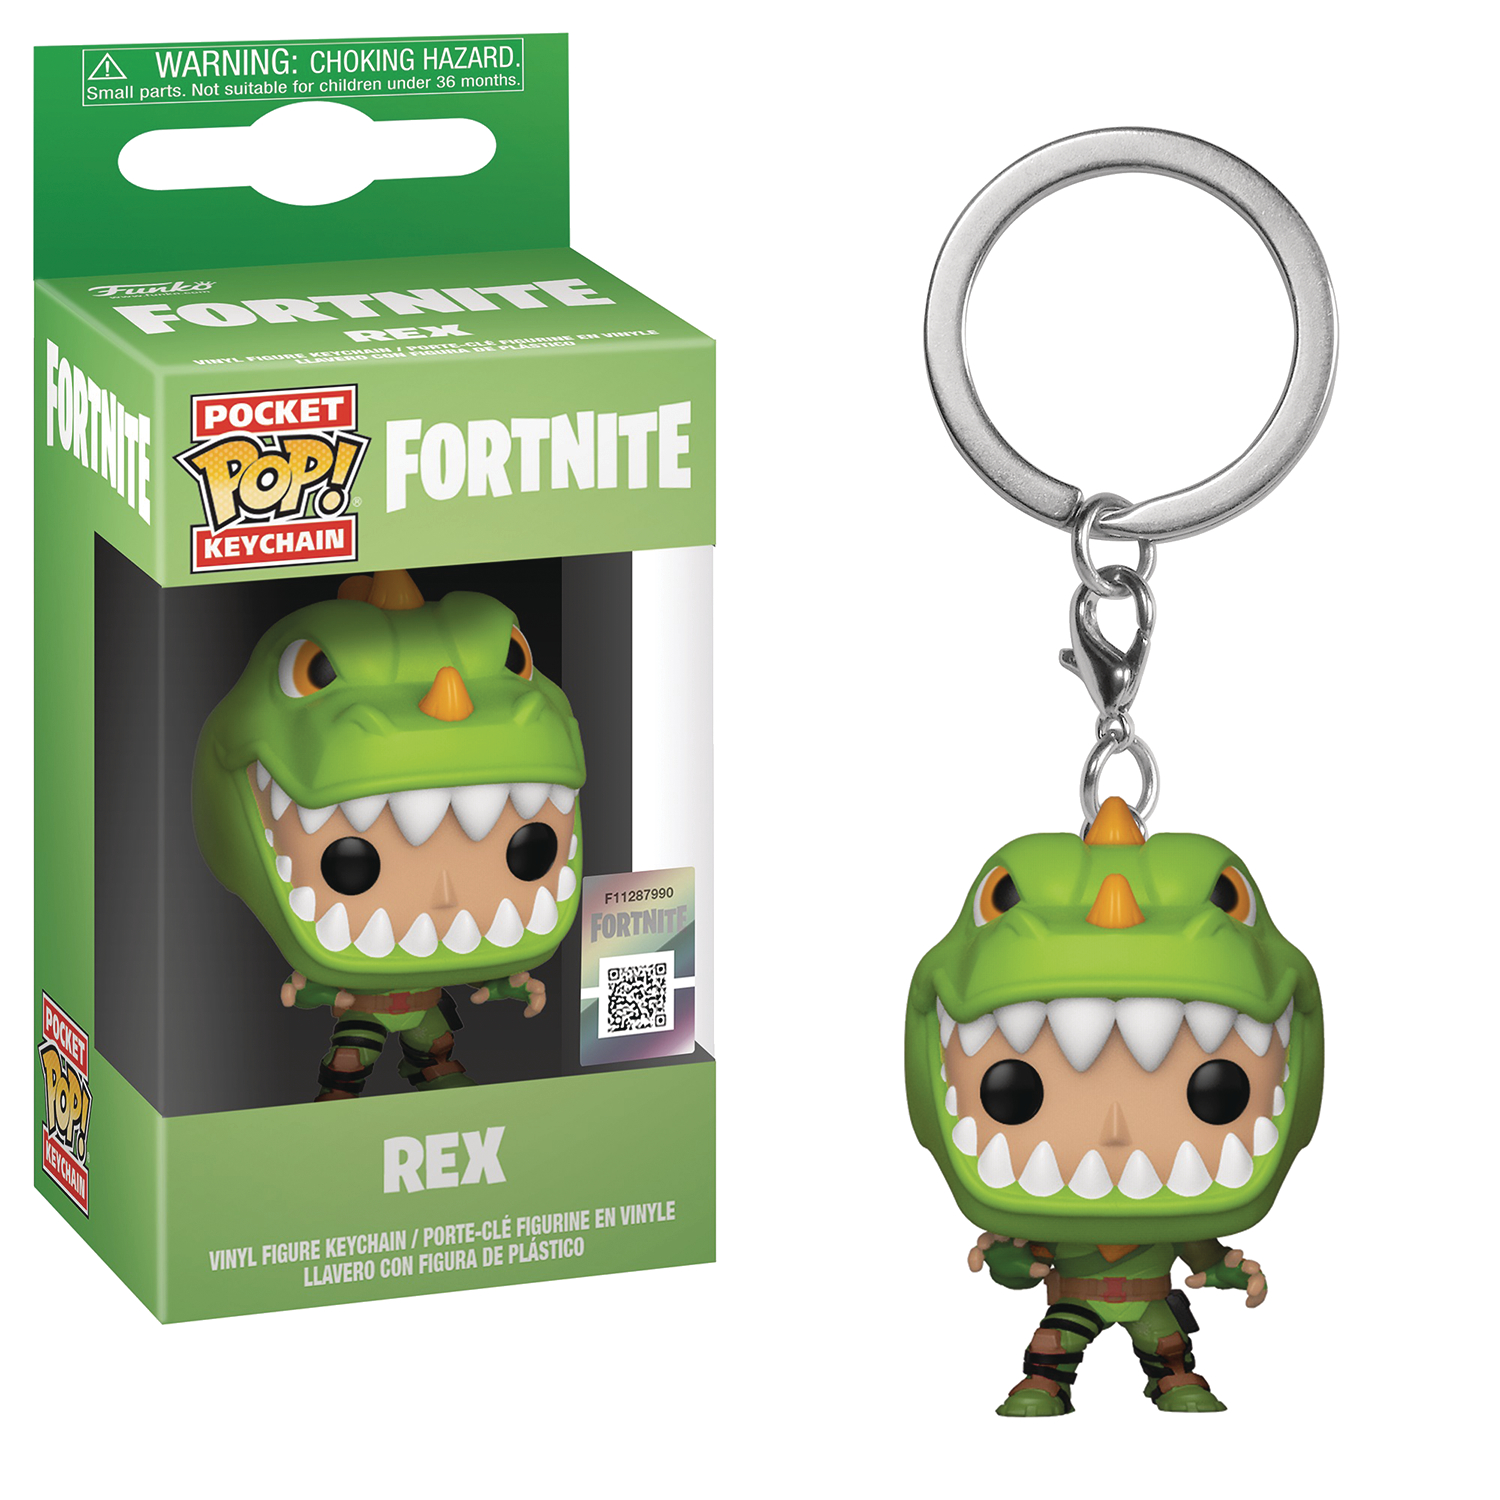 POCKET POP FORTNITE S1A REX FIG KEYCHAIN